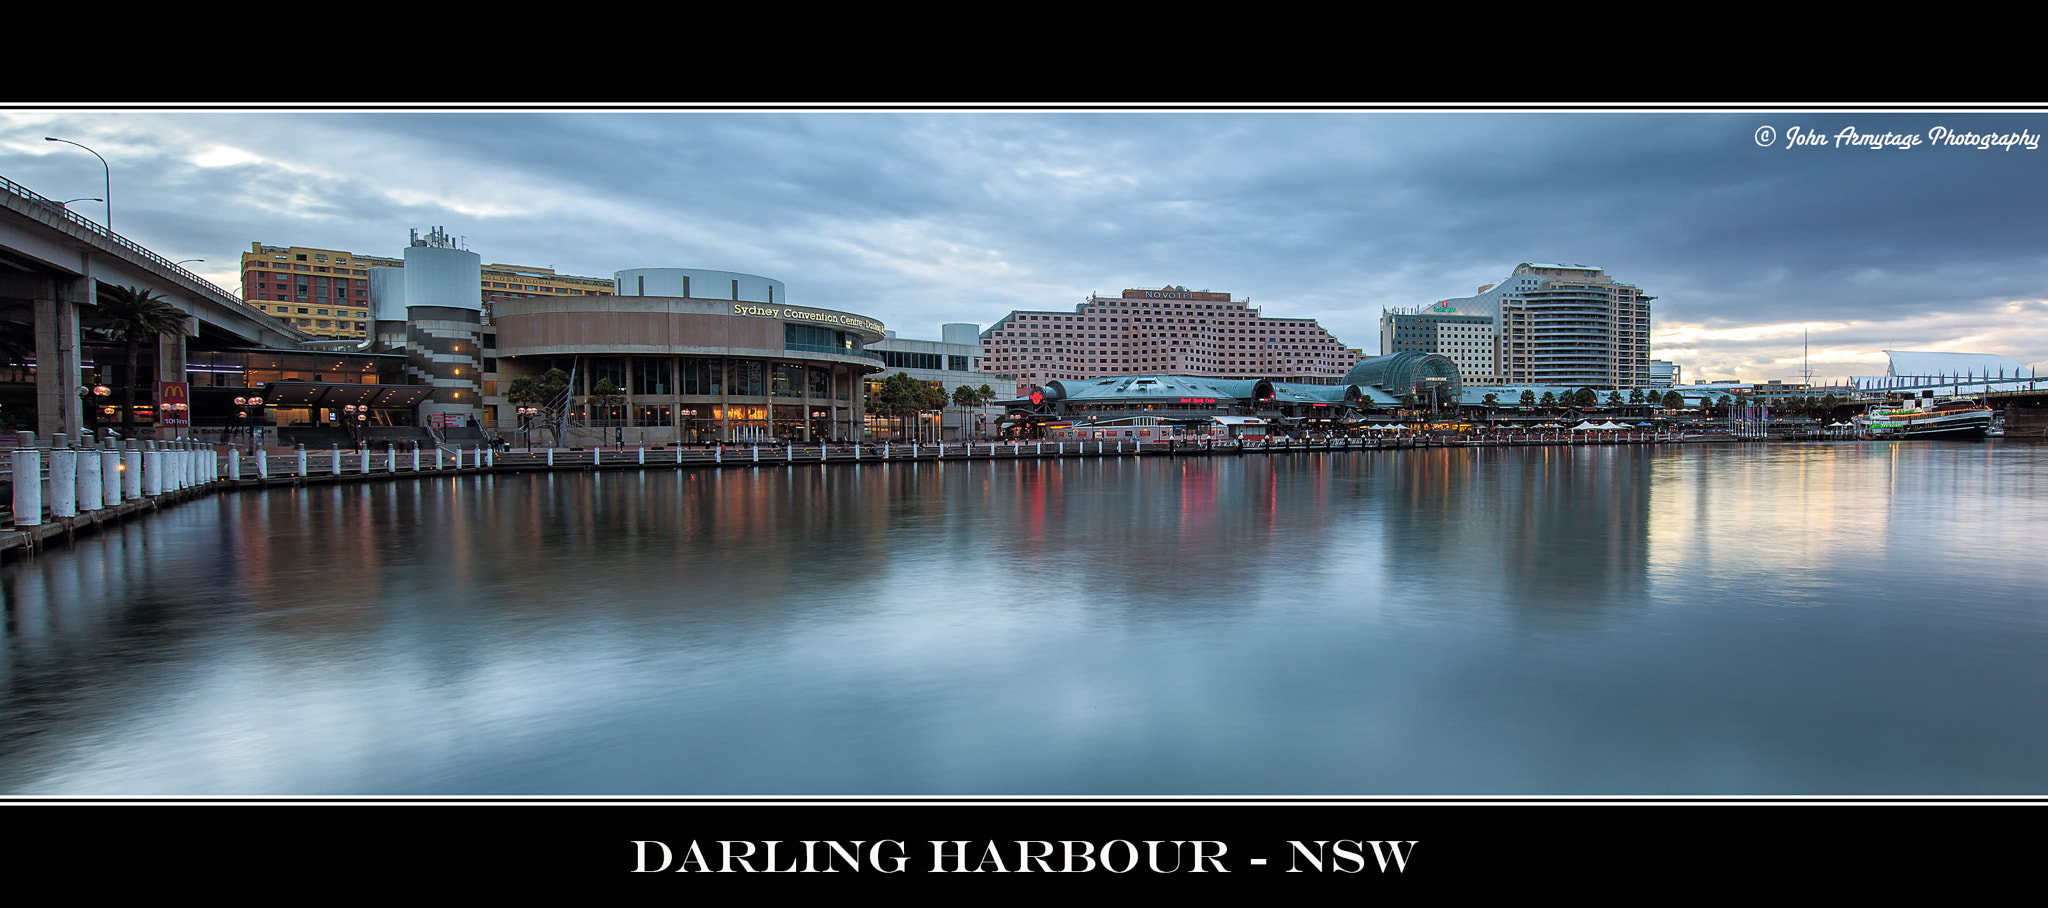 Photograph Darling Harbour NSW by John Armytage on 500px